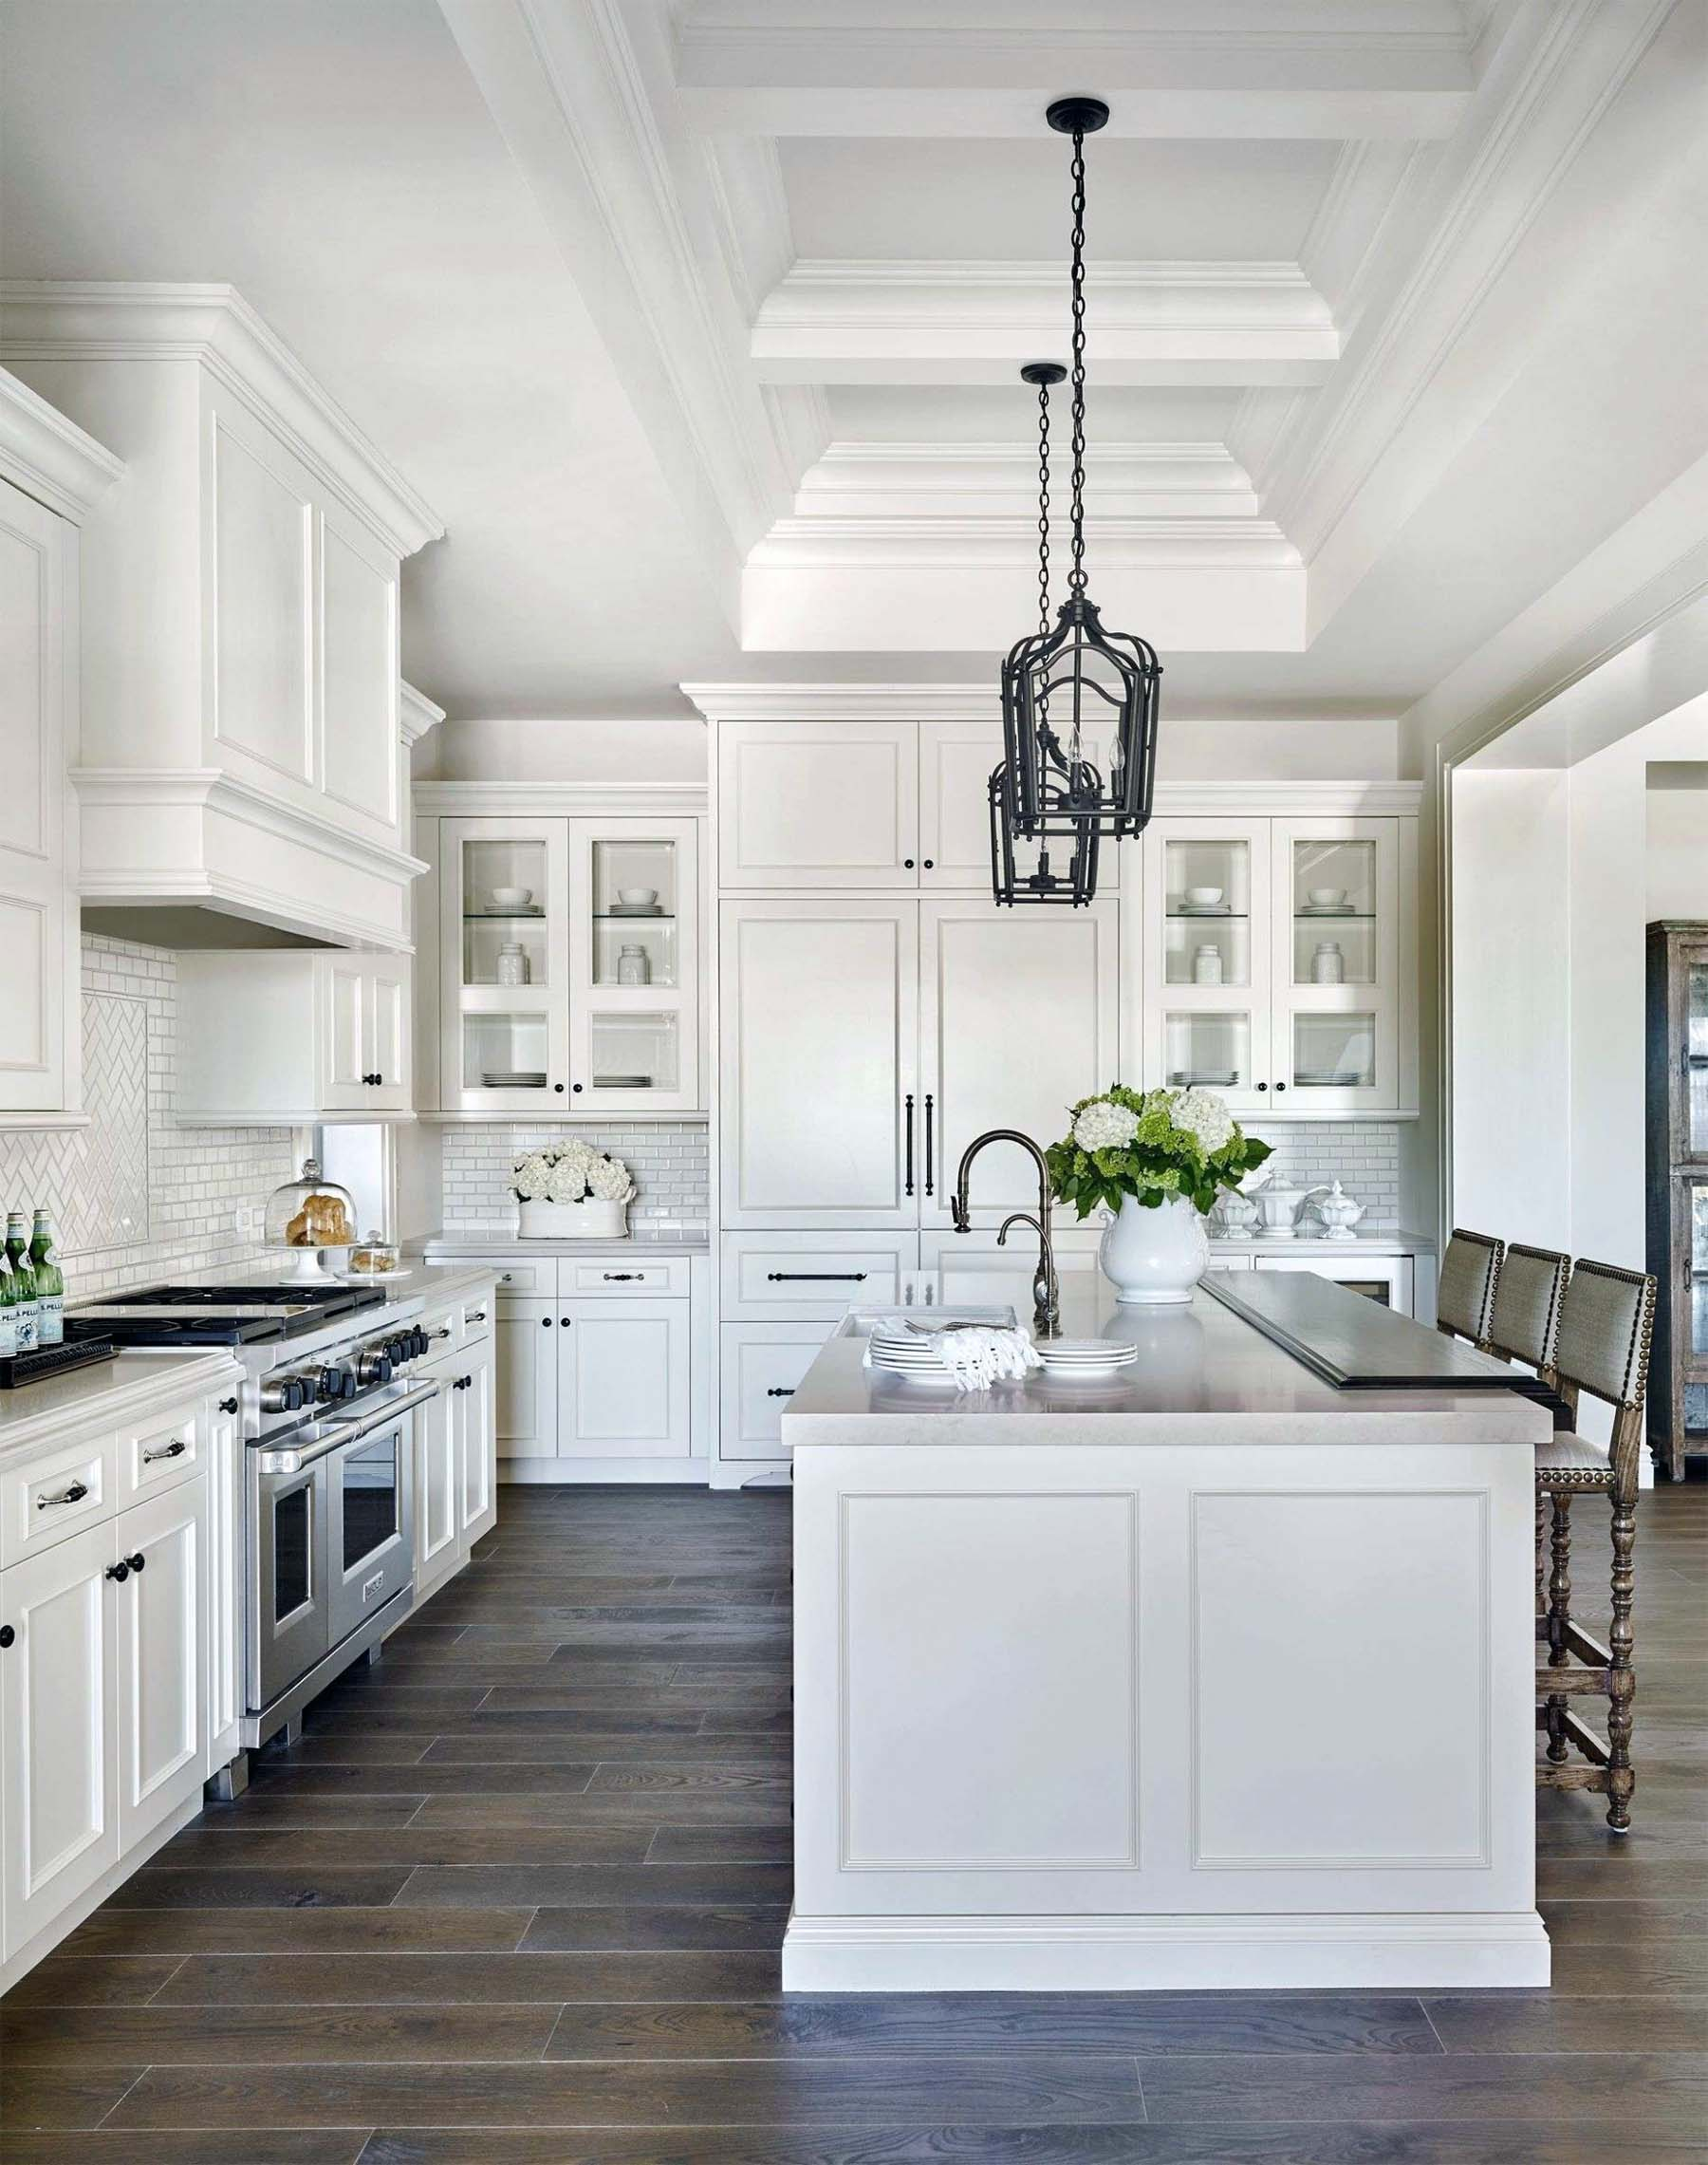 luxury kitchen design ideas white cabinets with dark tile floors Gambrick luxury home builders NJ